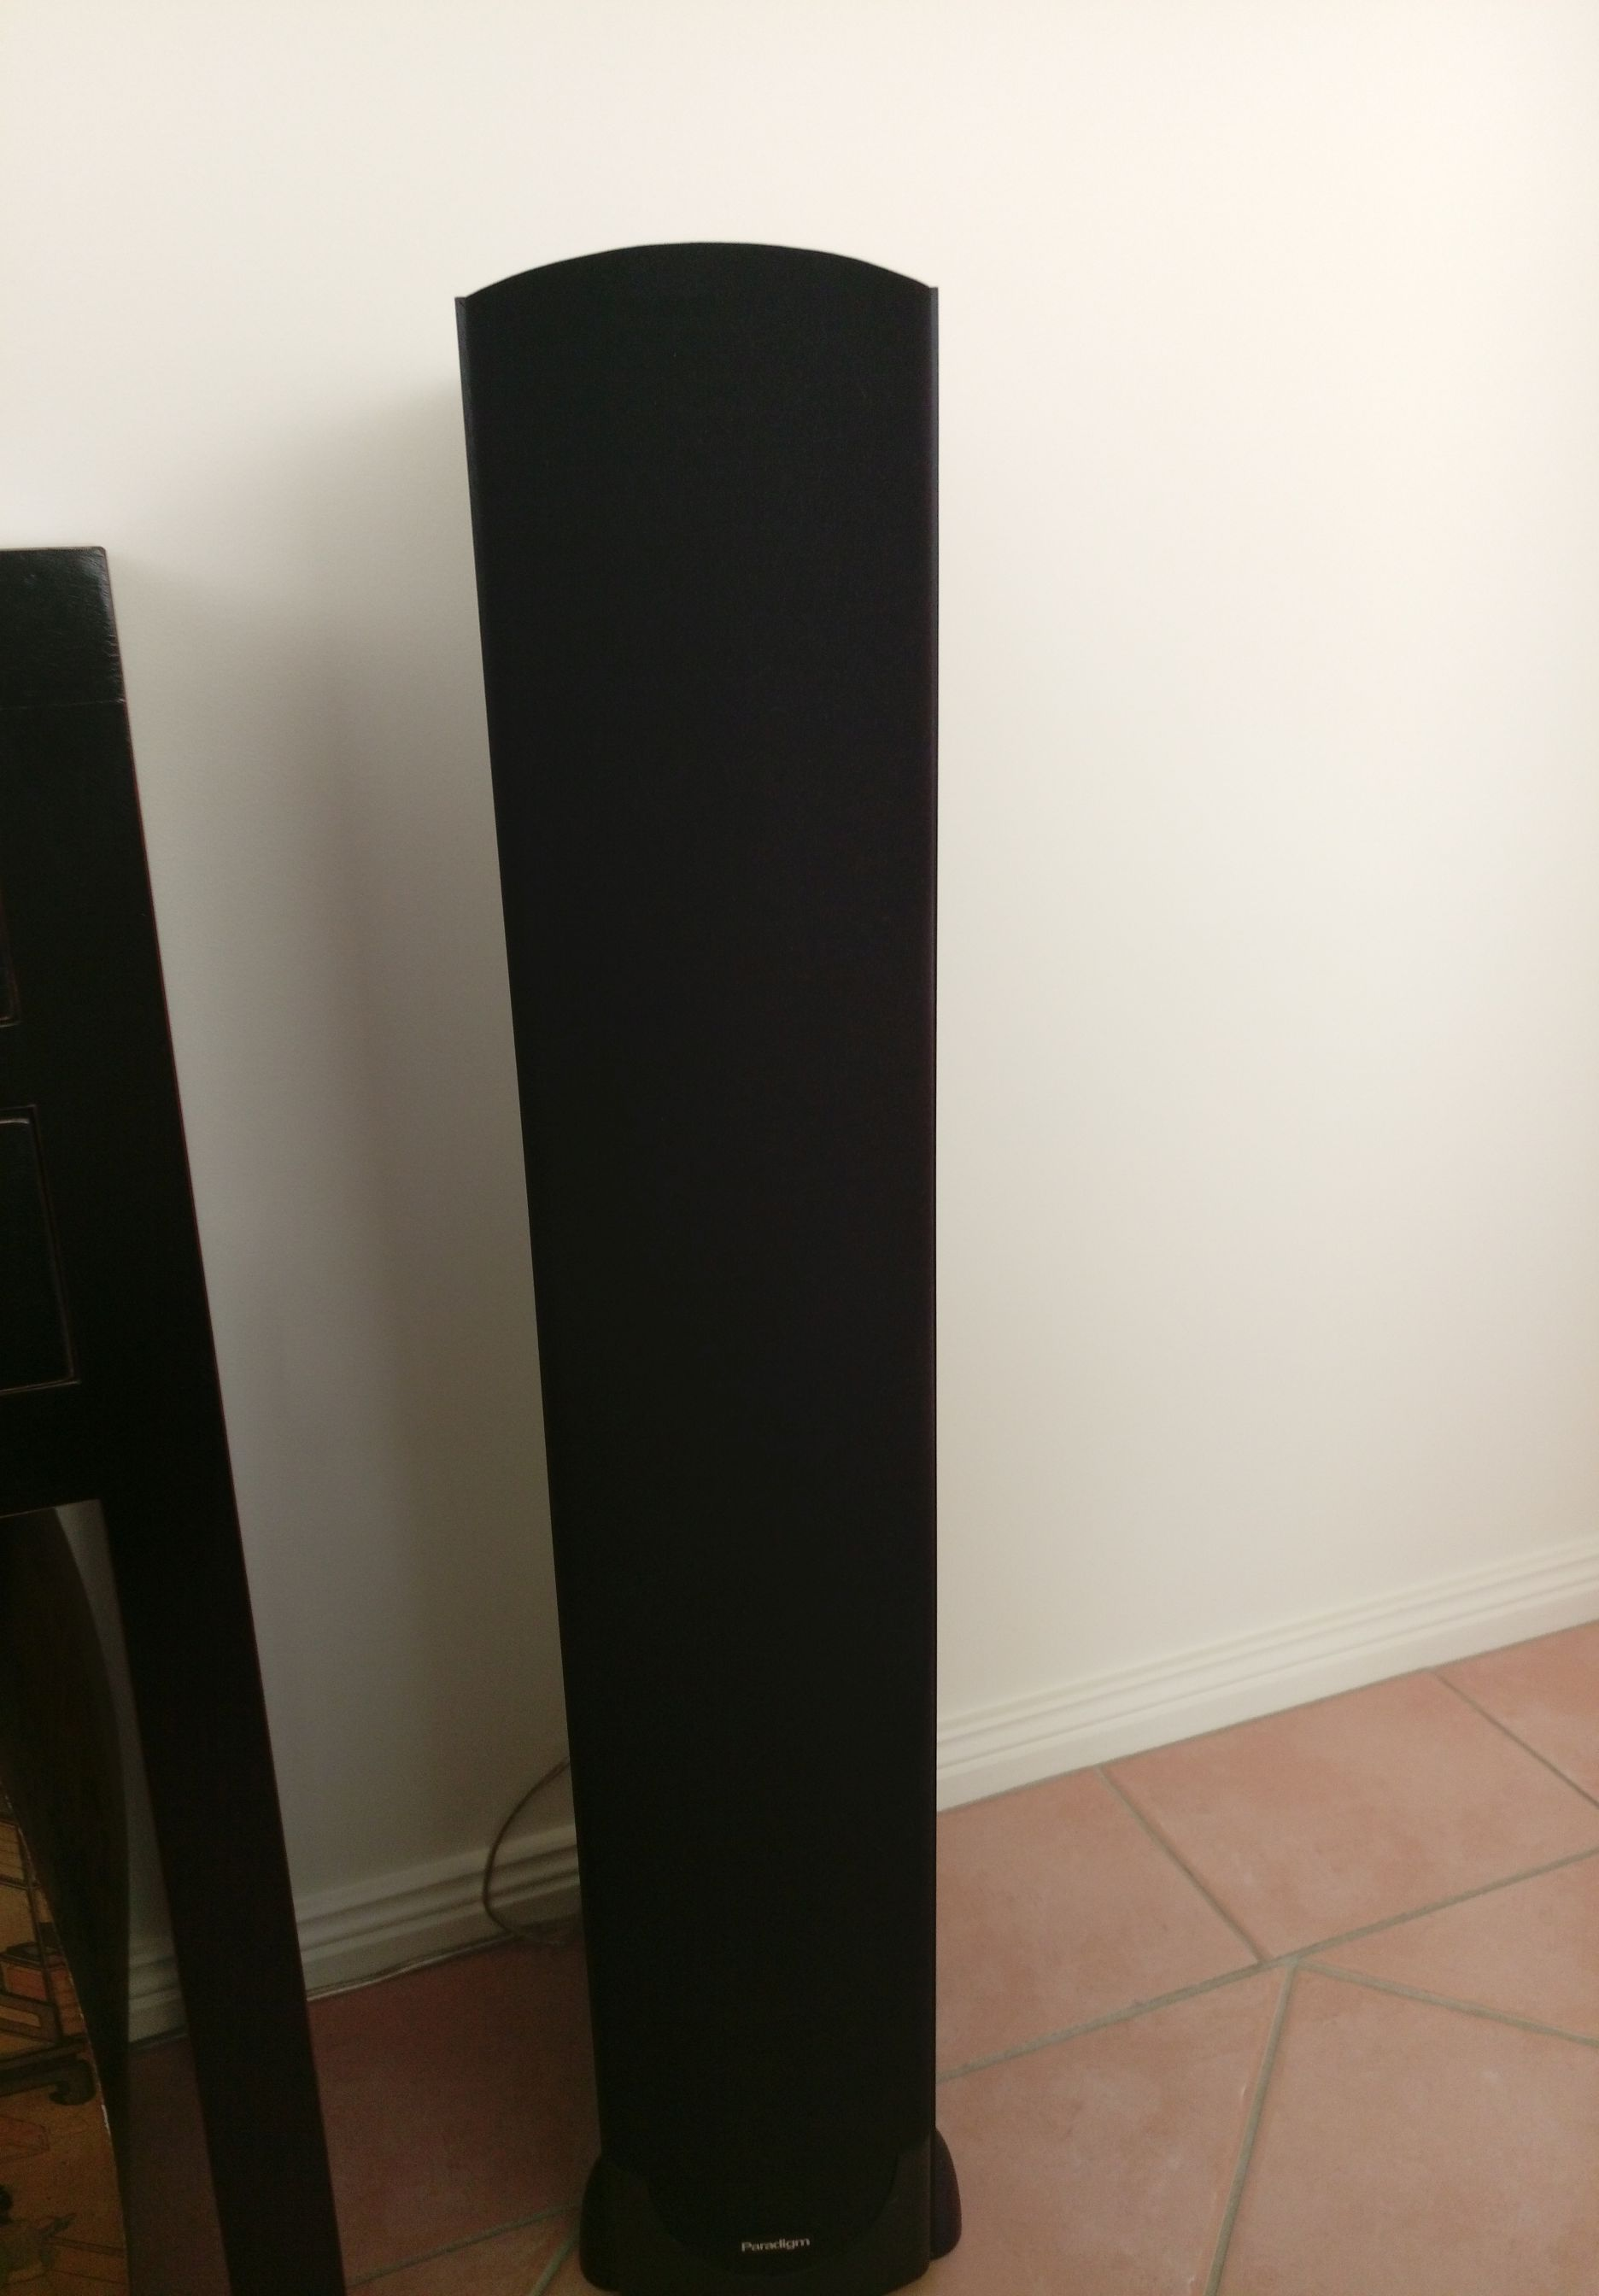 SOLD: FS: Paradigm Monitor 7 Floor stand speakers  Made in